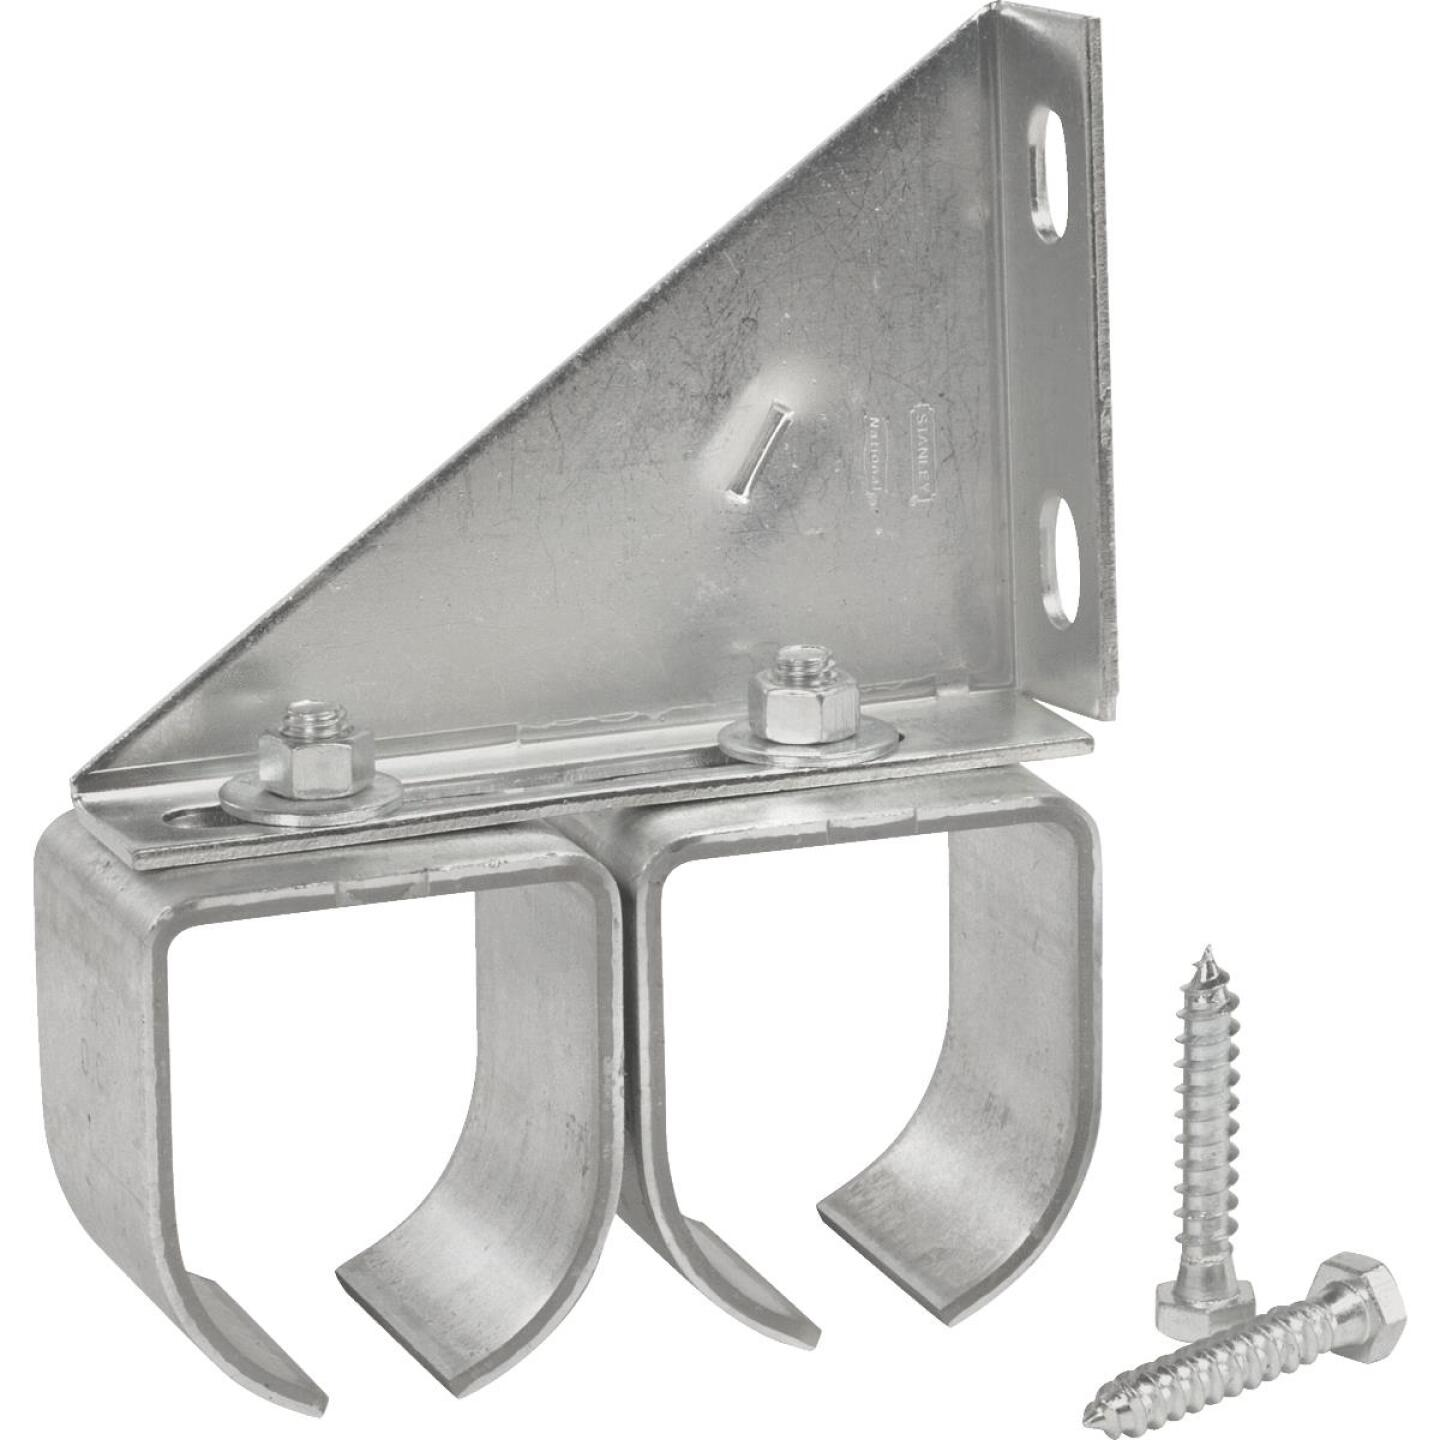 National Galvanized Double Round Rail Barn Door Bracket Image 2